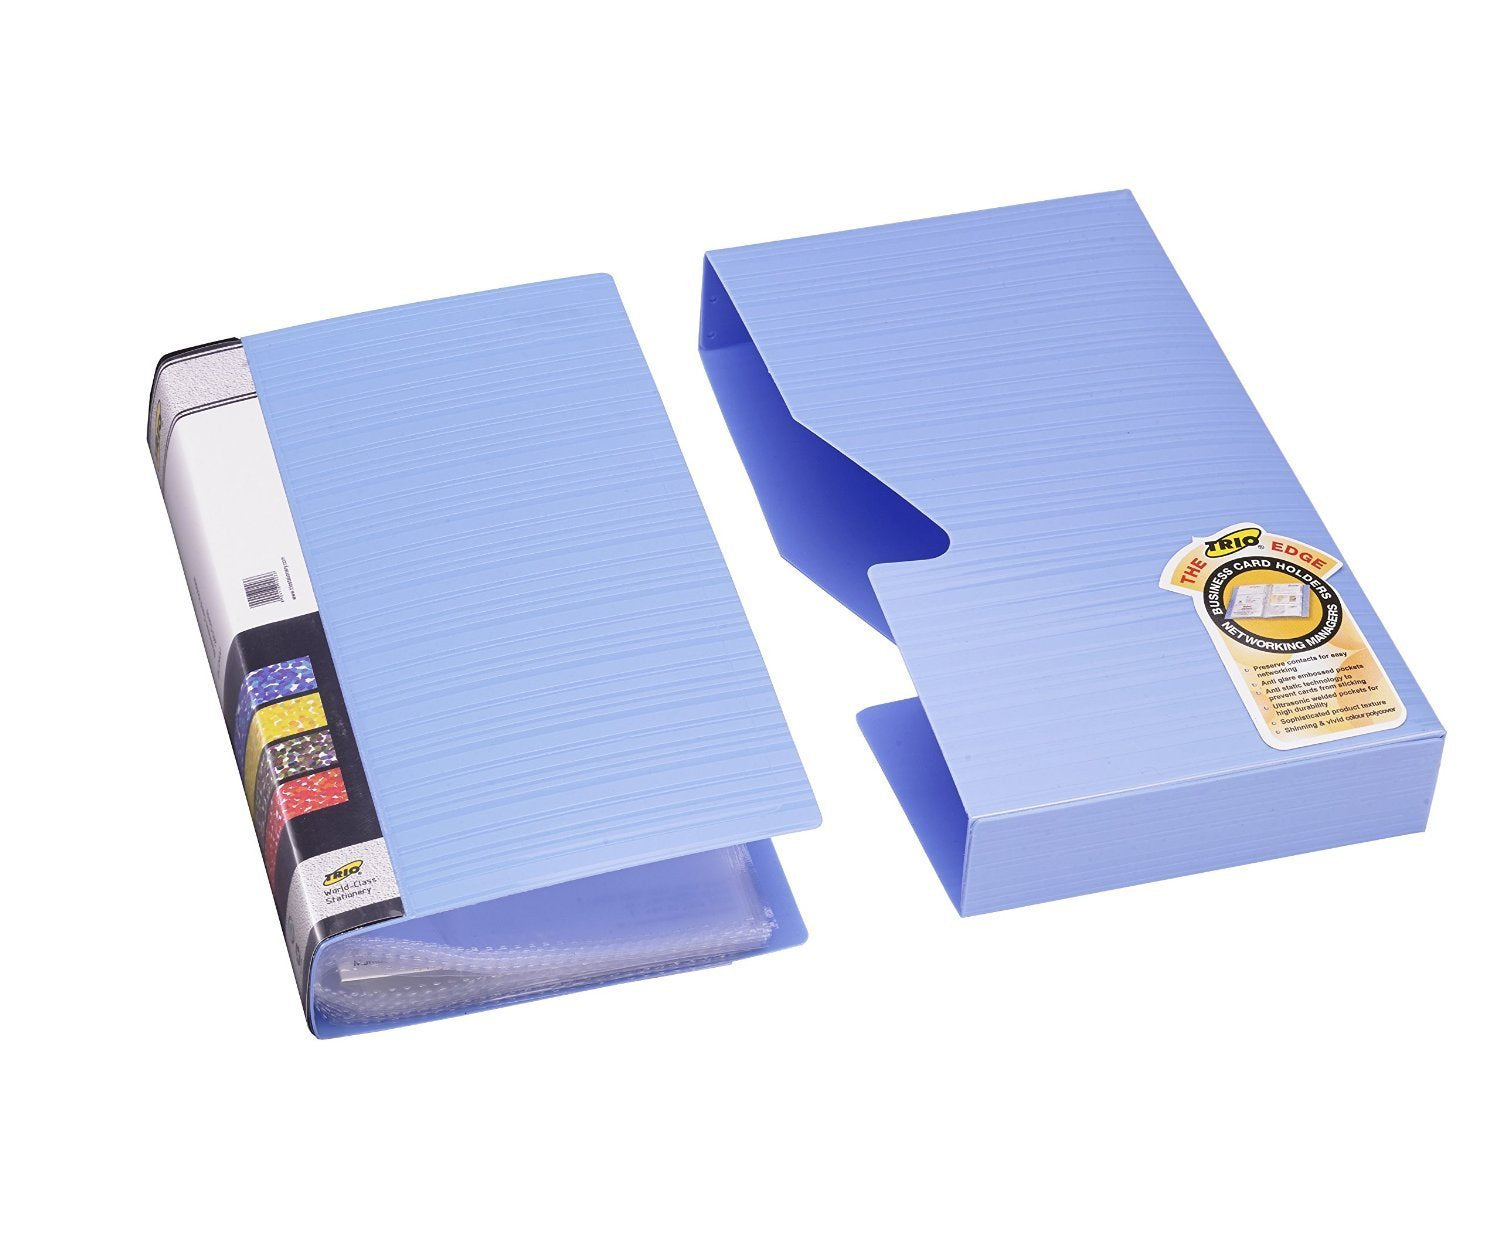 TRIO BC240J Business Card Holder - 240 Cards With Case (Set Of 4 Blue)